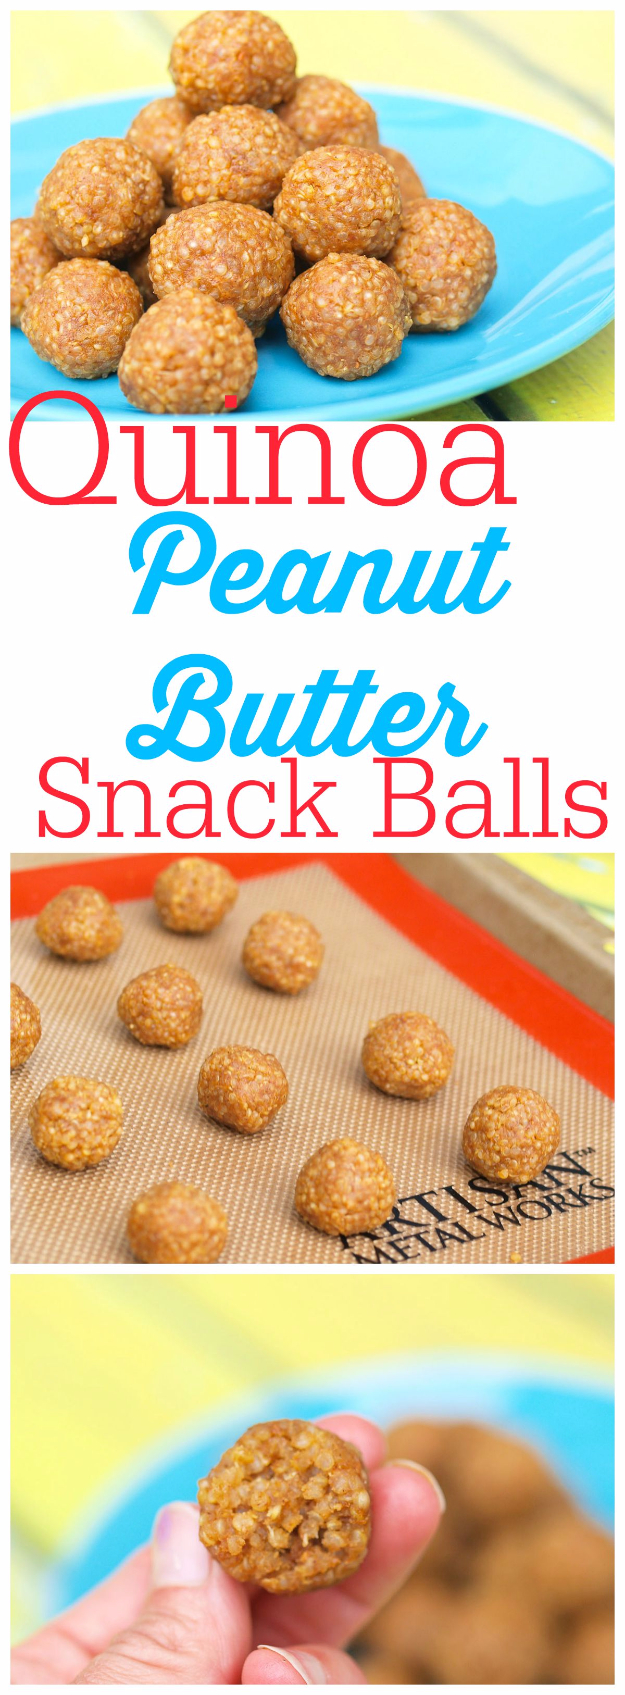 Last Minute Dessert Recipes and Ideas - Quinoa Peanut Butter Snack Balls - Healthy and Easy Ideas for No Bake Recipe Foods, Chocolate, Peanut Butter. Best Simple Ideas for Summer, For A Crowd and for Parties